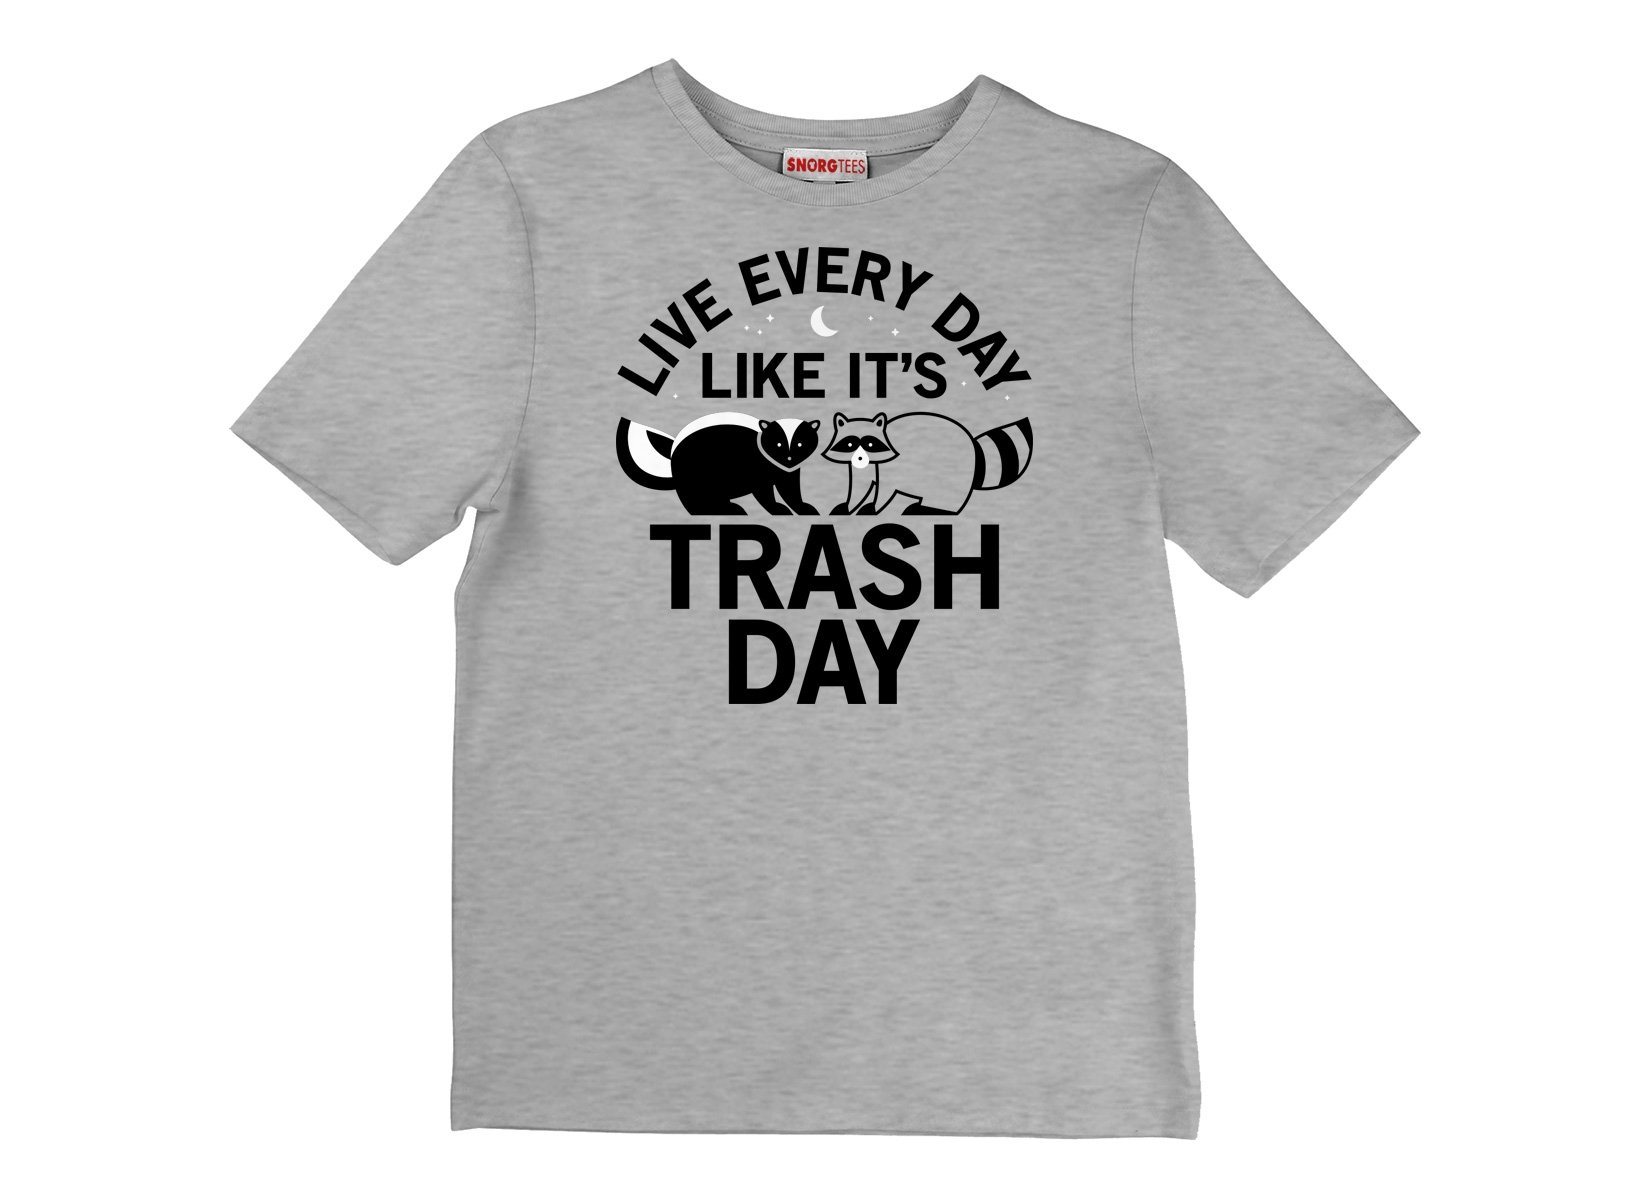 Live Every Day Like It's Trash Day on Kids T-Shirt